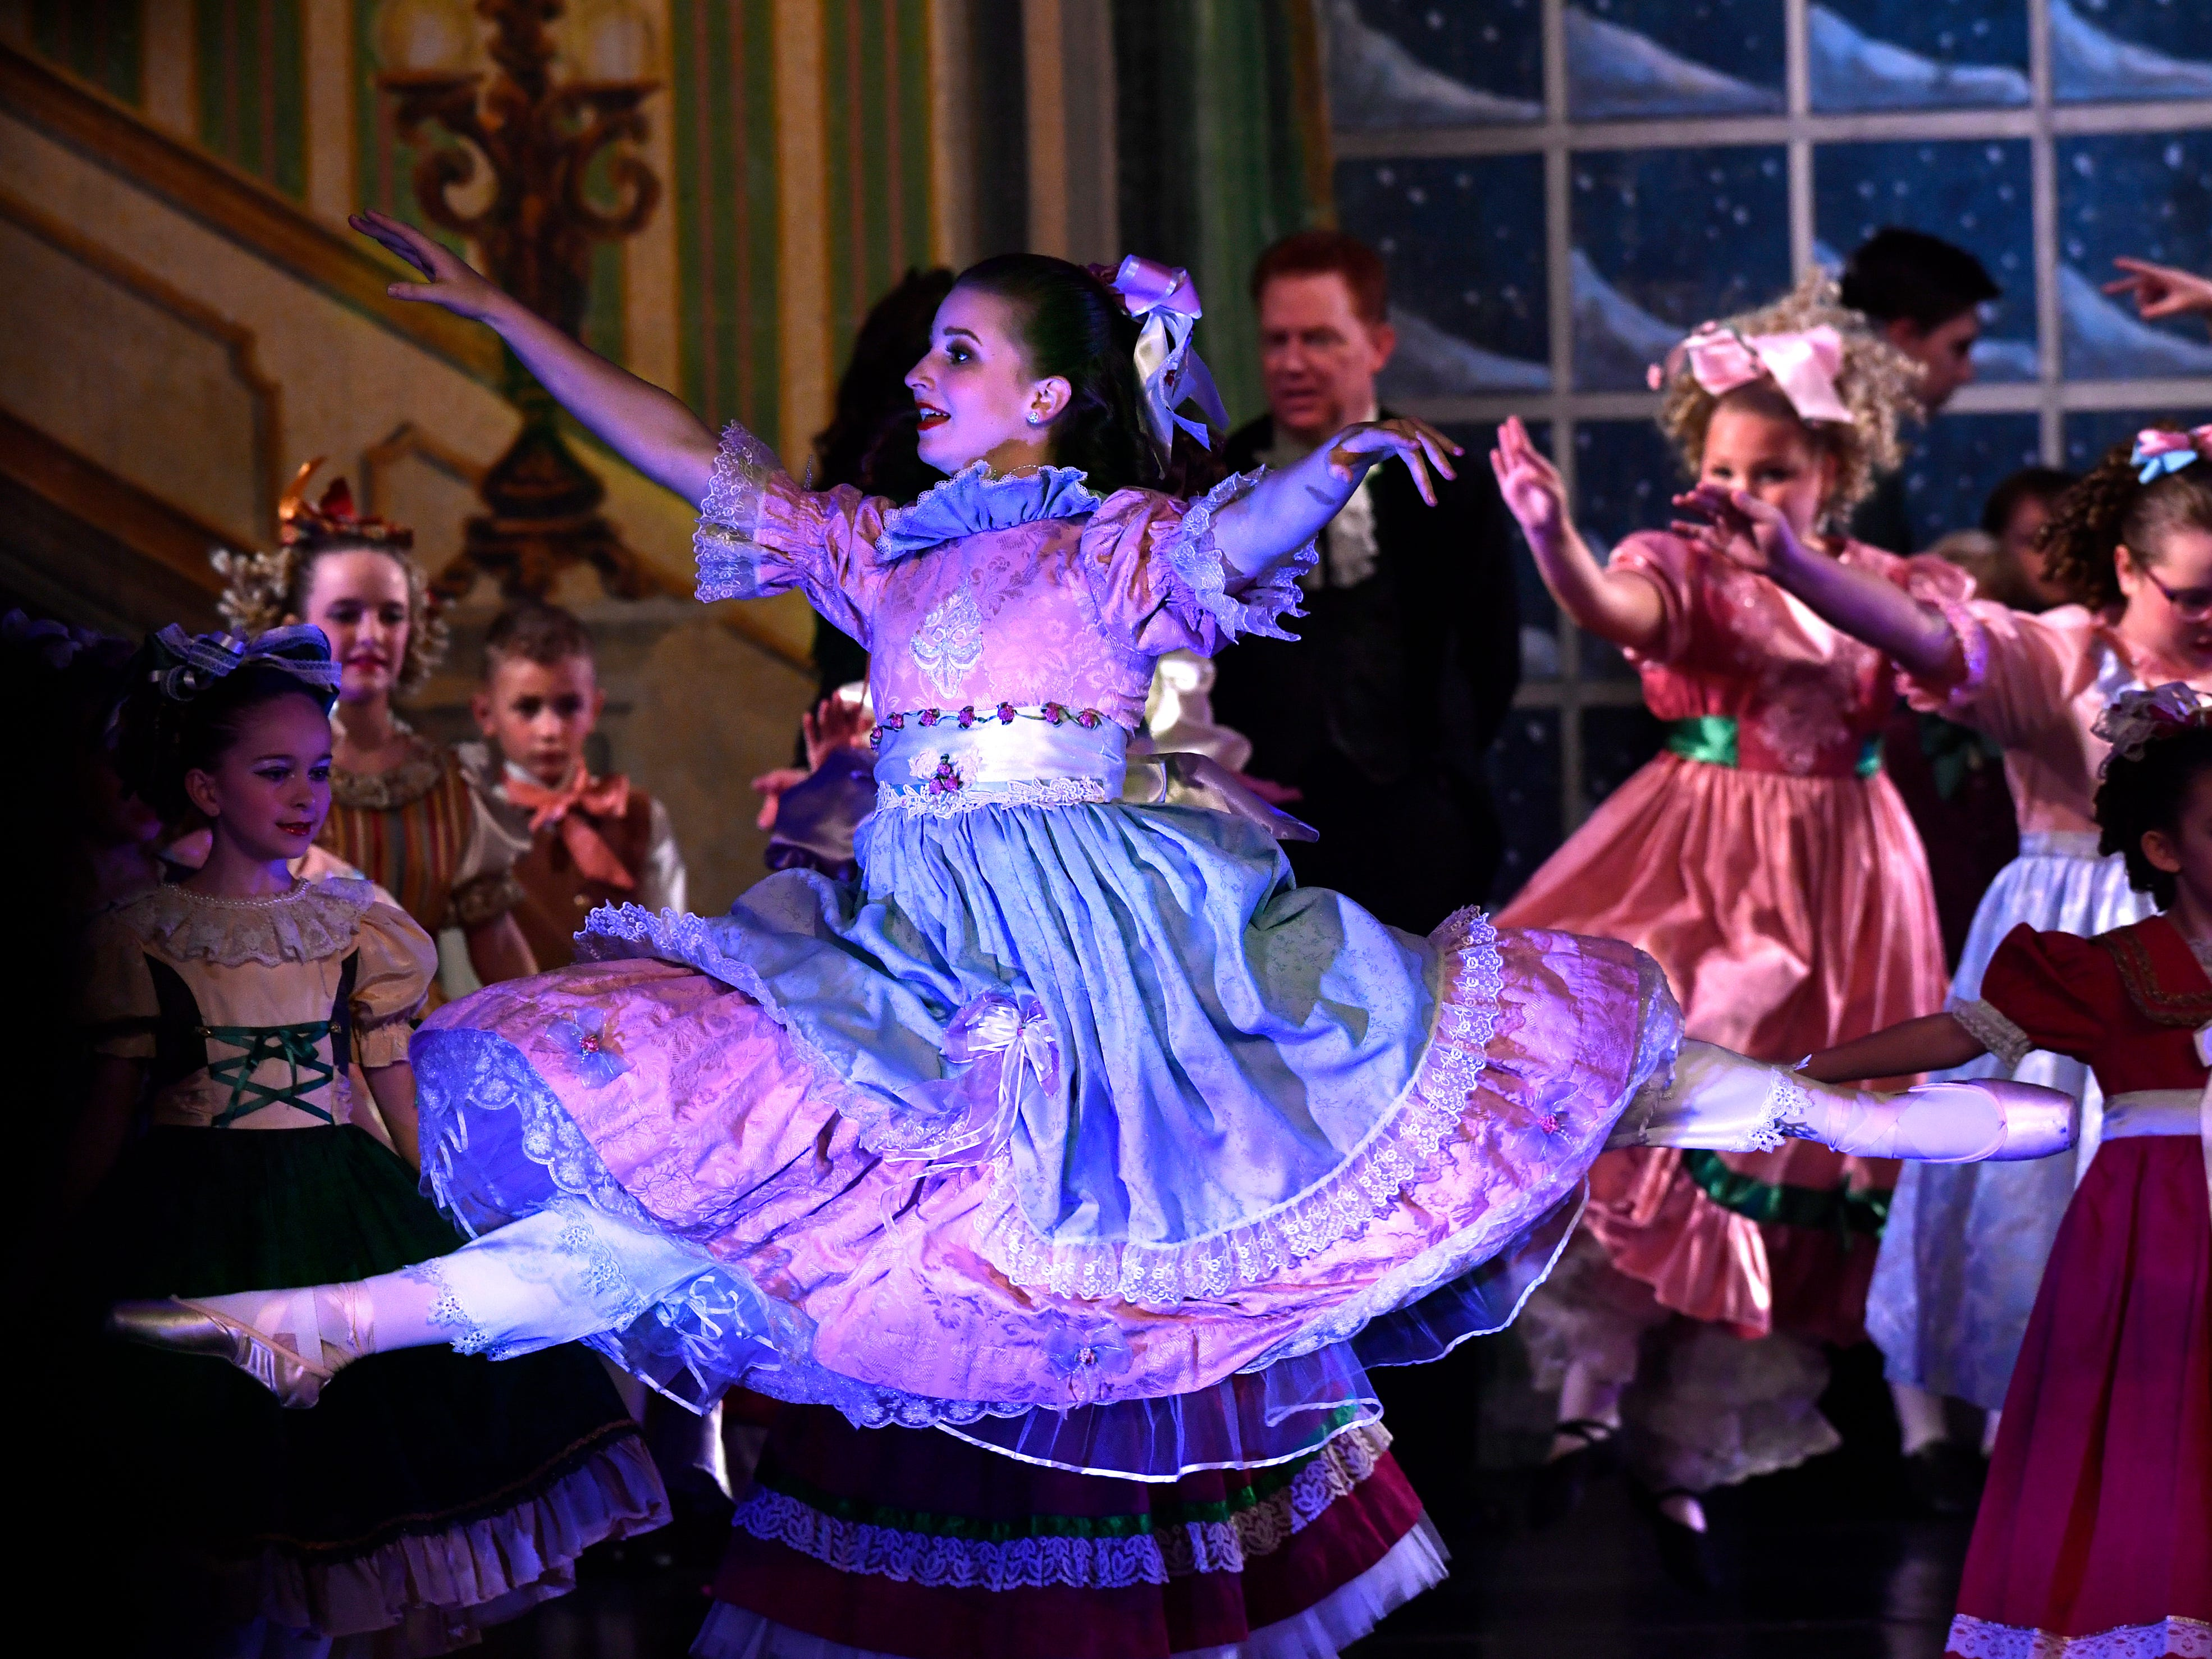 Hope Longley performs as Clara in the Party Scene during a performance of The Nutcracker for schoolchildren Friday Nov. 16, 2018. Three girls played Clara; Lily Etter and Berkley Paul were the other two dancers. This was the 31st year for the Abilene Ballet Theatre production, held at the Paramount Theatre.